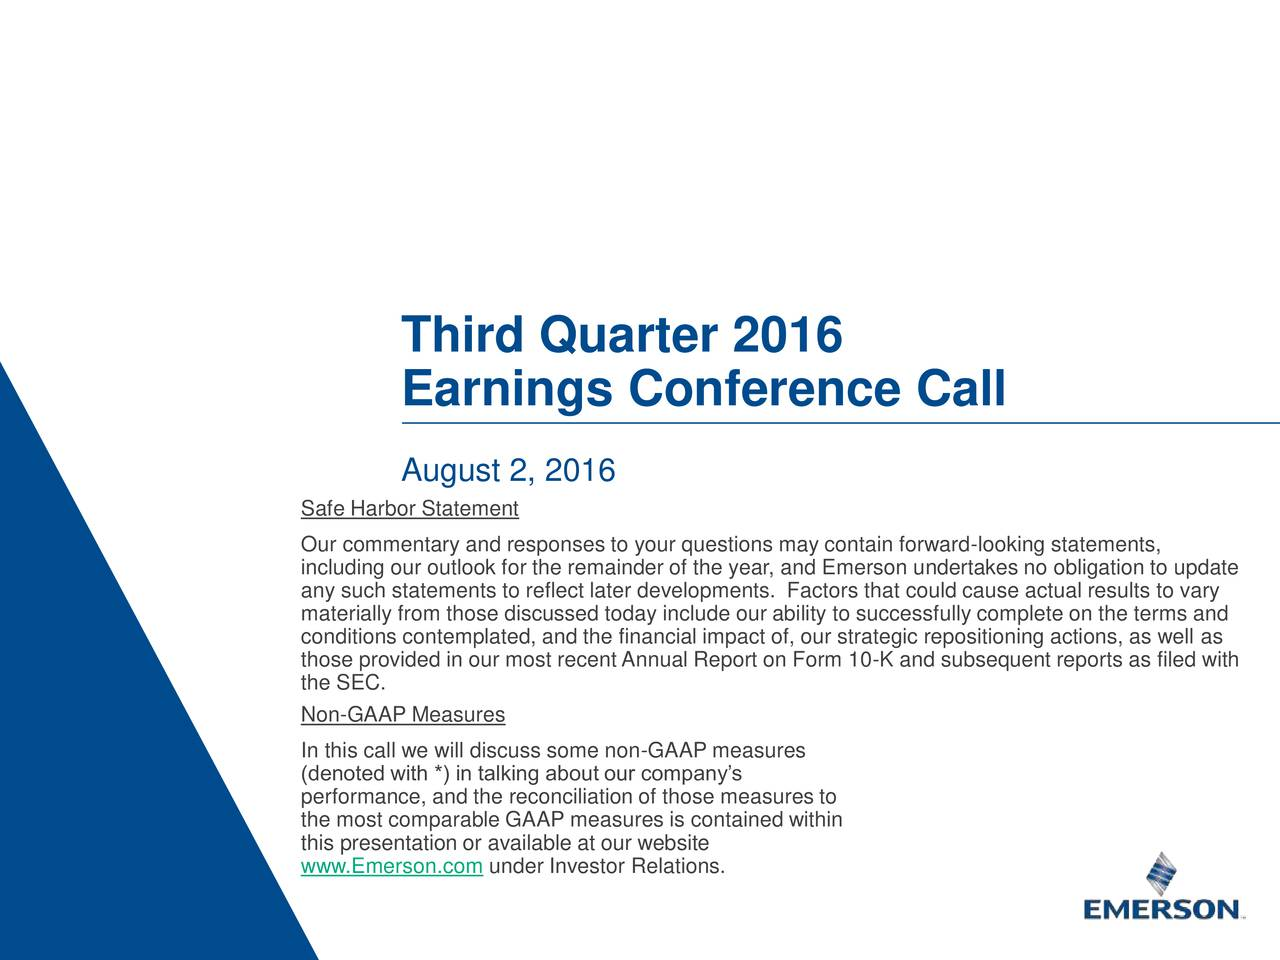 Earnings Conference Call August 2, 2016 Safe Harbor Statement Our commentary and responses to your questions may contain forward-looking statements, including our outlook for the remainder of the year, and Emerson undertakes no obligation to update any such statements to reflect later developments. Factors that could cause actual results to vary materially from those discussed today include our ability to successfully complete on the terms and conditions contemplated, and the financial impact of, our strategic repositioning actions, as well as those provided in our most recent Annual Report on Form 10-K and subsequent reports as filed with the SEC. Non-GAAP Measures In this call we will discuss some non-GAAP measures (denoted with *) in talking about our companys performance, and the reconciliation of those measures to the most comparable GAAP measures is contained within www.Emerson.com under Investor Relations.site 1